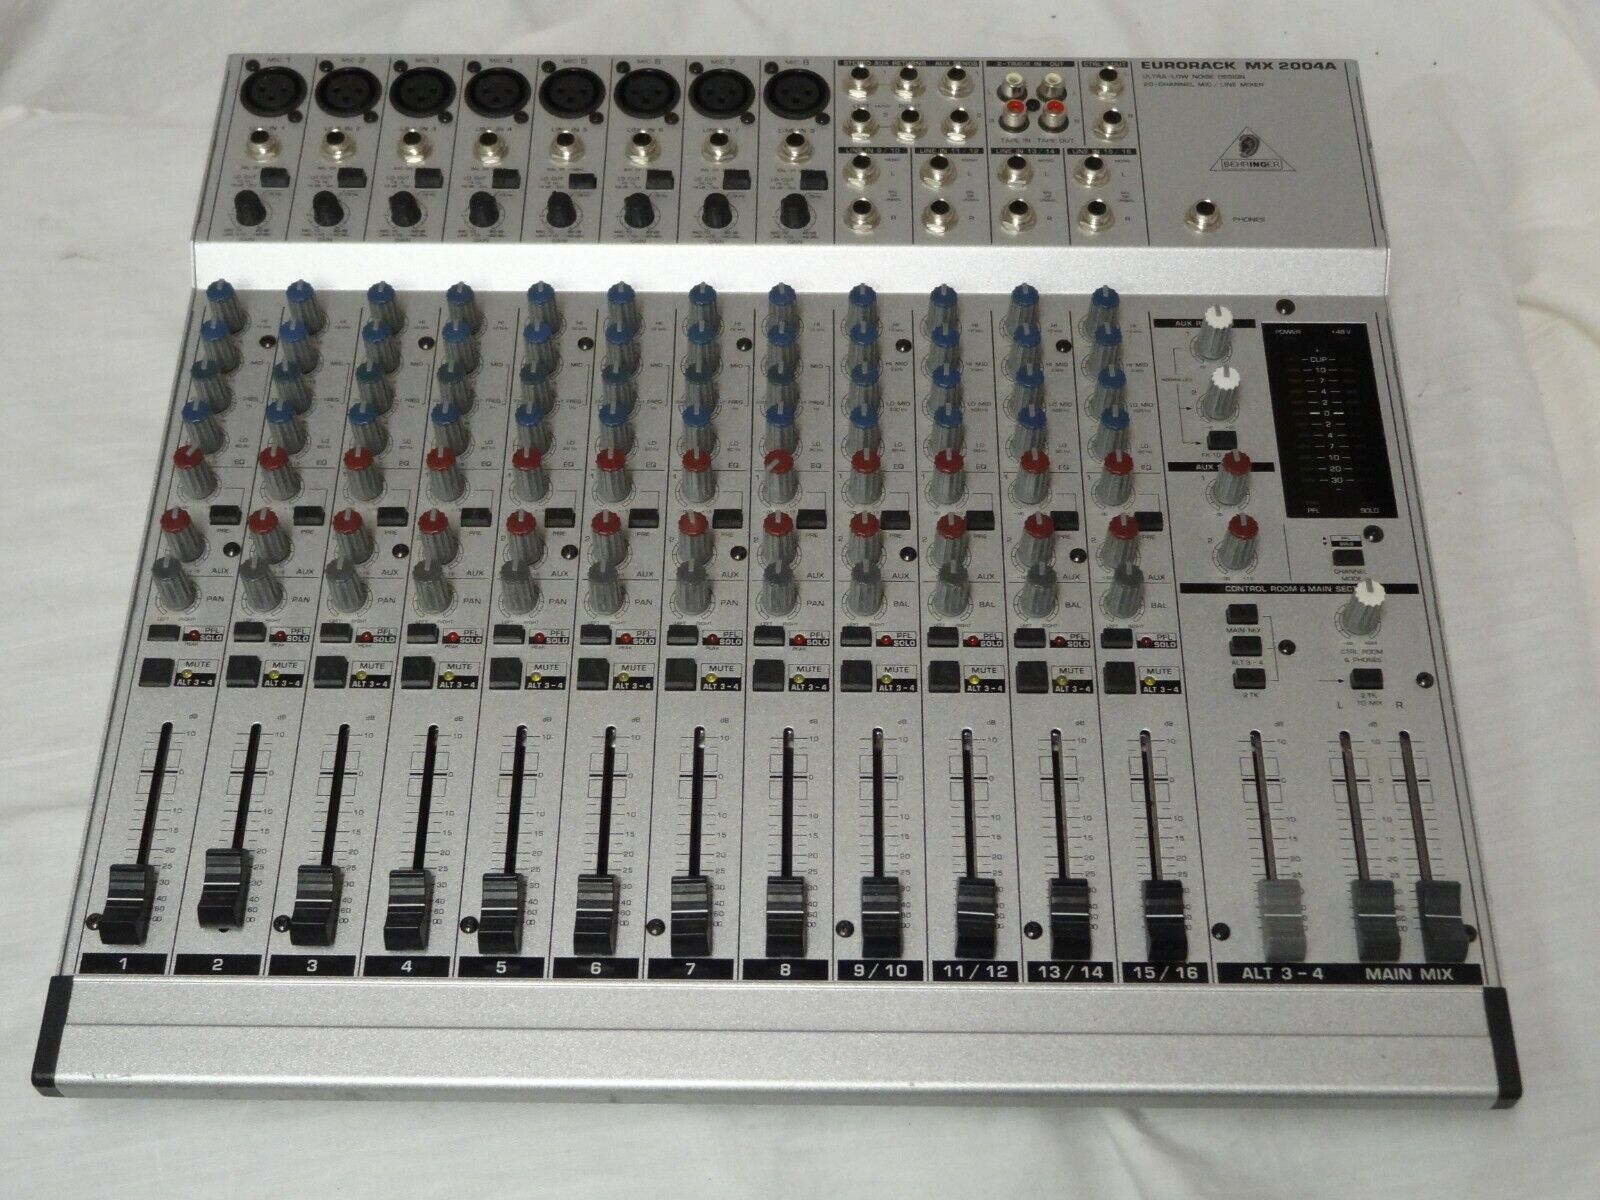 Behringer Eurorack MX 2004A 20 Channel Mixer Console Sound Board -No Power Cord. Buy it now for 55.00